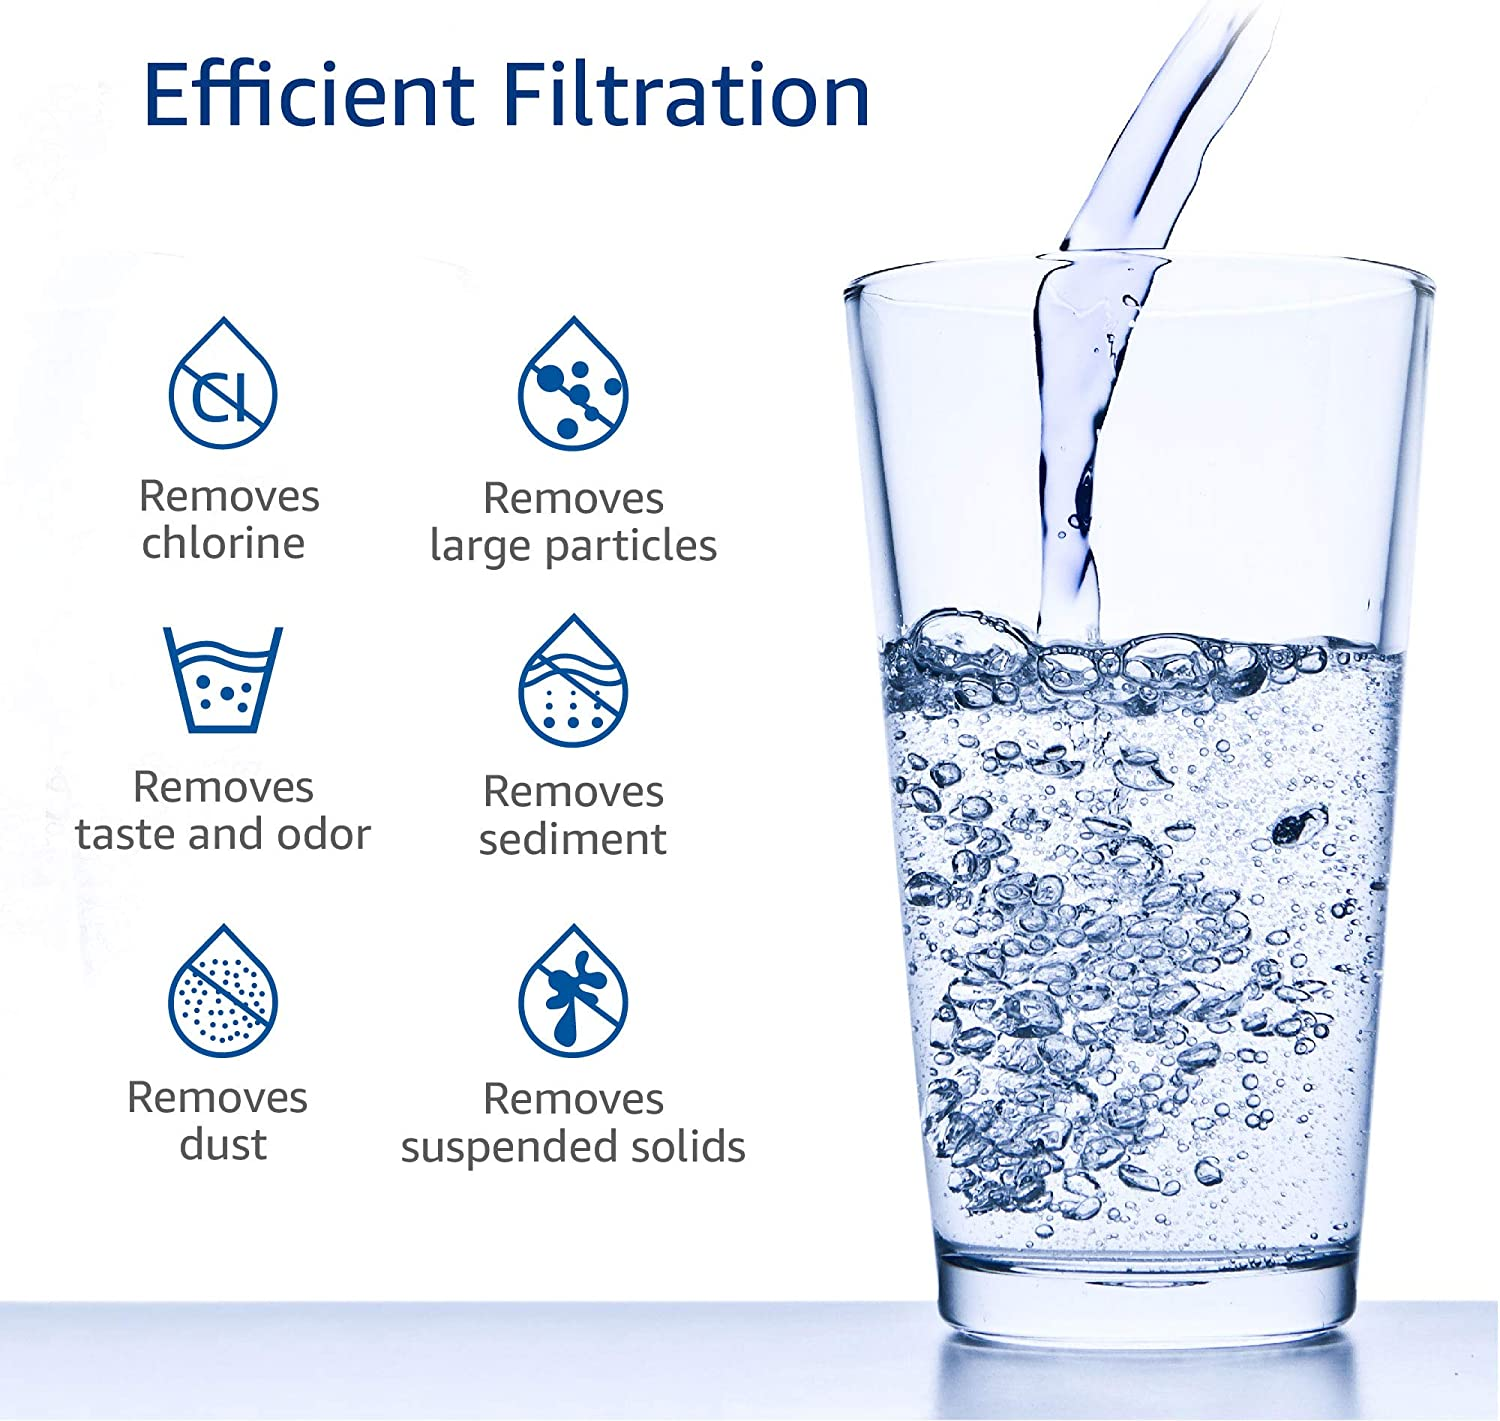 AQUACREST FQSVF Replacement Under Sink Water Filter, Replacement for GE FQSVF, GXSV65R (1 Set): Home Improvement